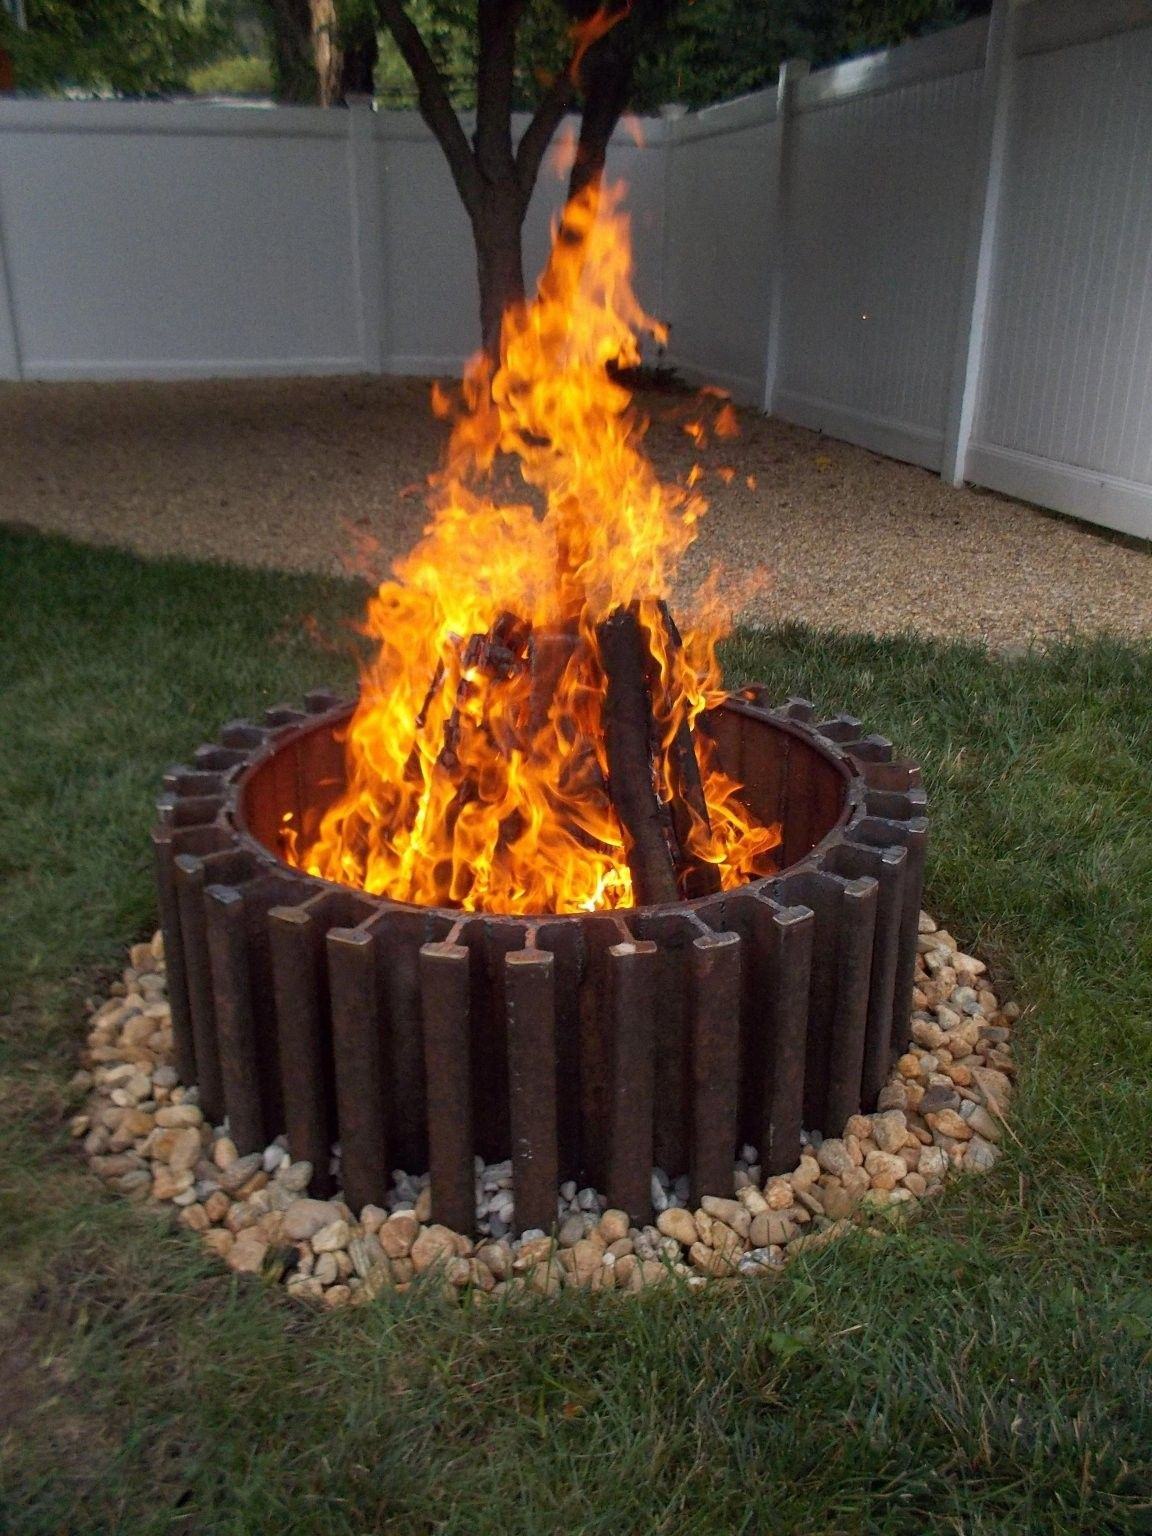 40 Amazing Backyard Fire Pit Ideas To See More Visit Outside Fire Pits Cool Fire Pits Fire Pit Plans